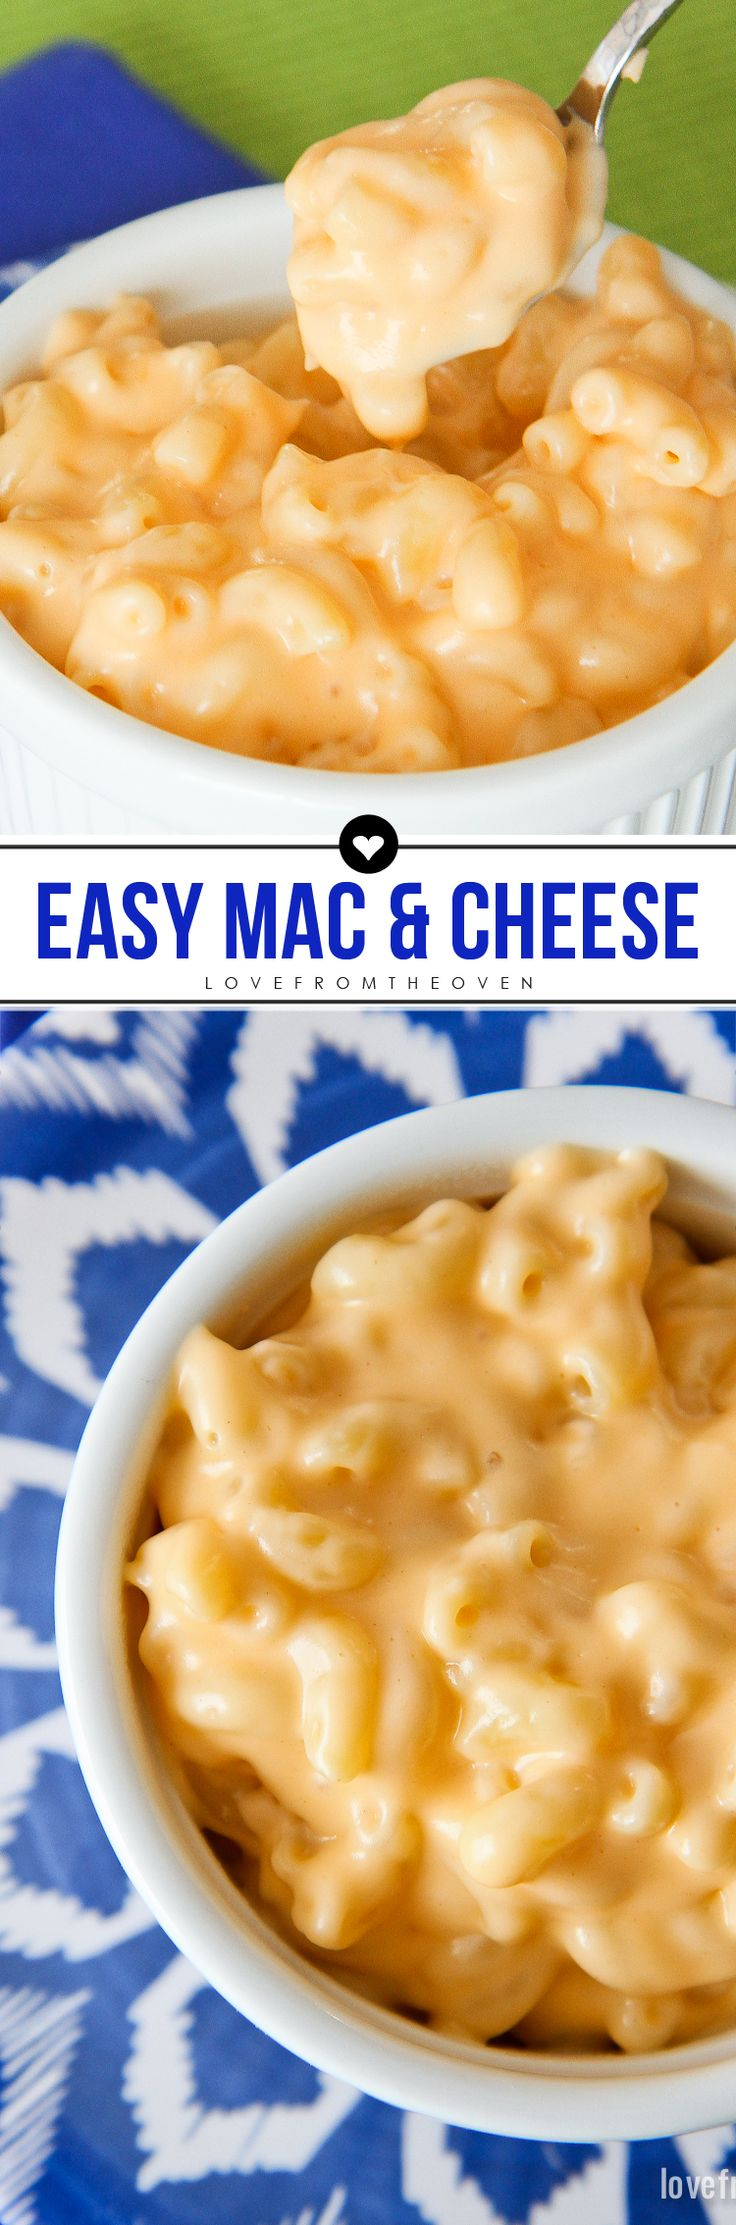 This easy macaroni recipe is creamy and cheesy, can be made in one pot and takes only a few more minutes than making a box mix.  My kids love this mac and cheese recipe!